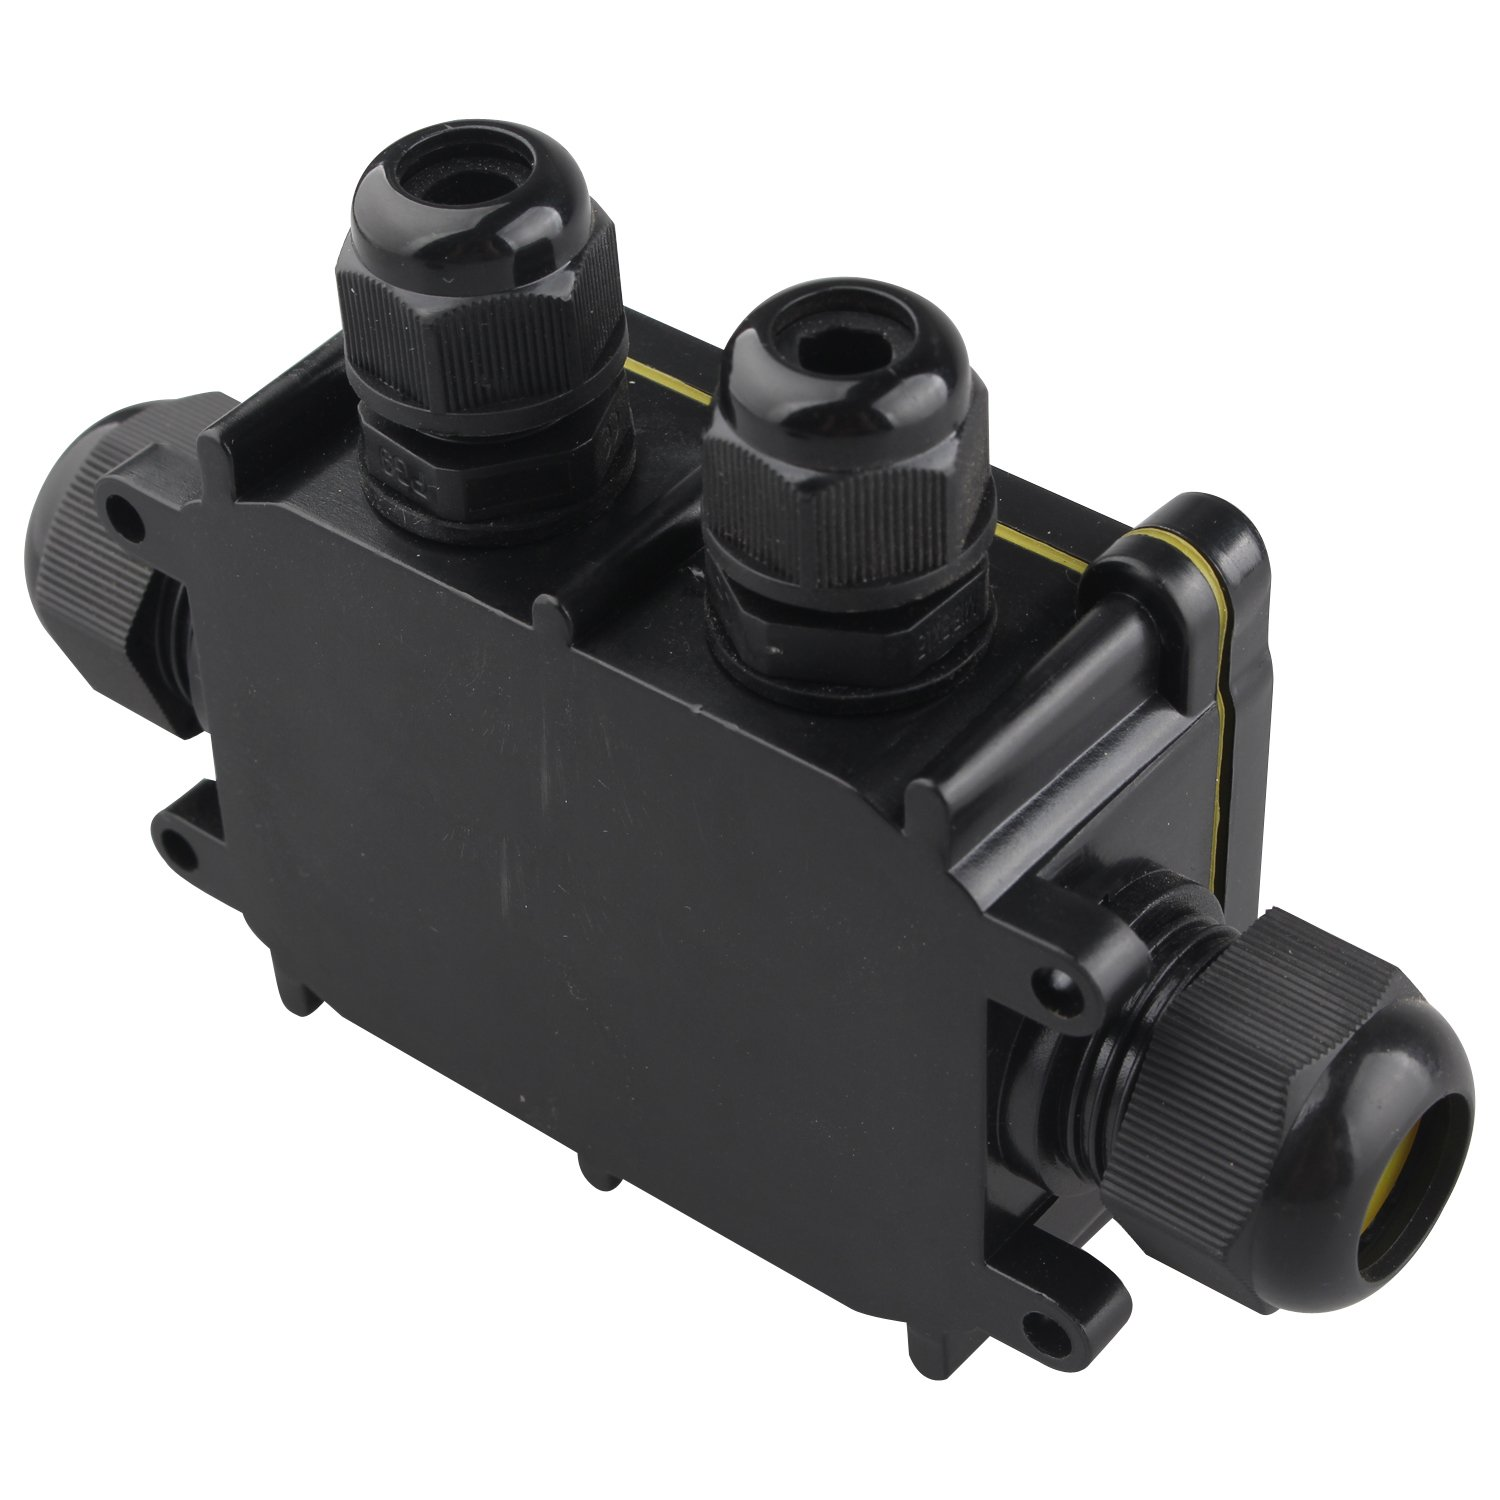 Ip68 Waterproof Junction Box Large 4 Way Cable Connector Outdoor How To Wire Wiring Lighting Electrical External Coupler Gland